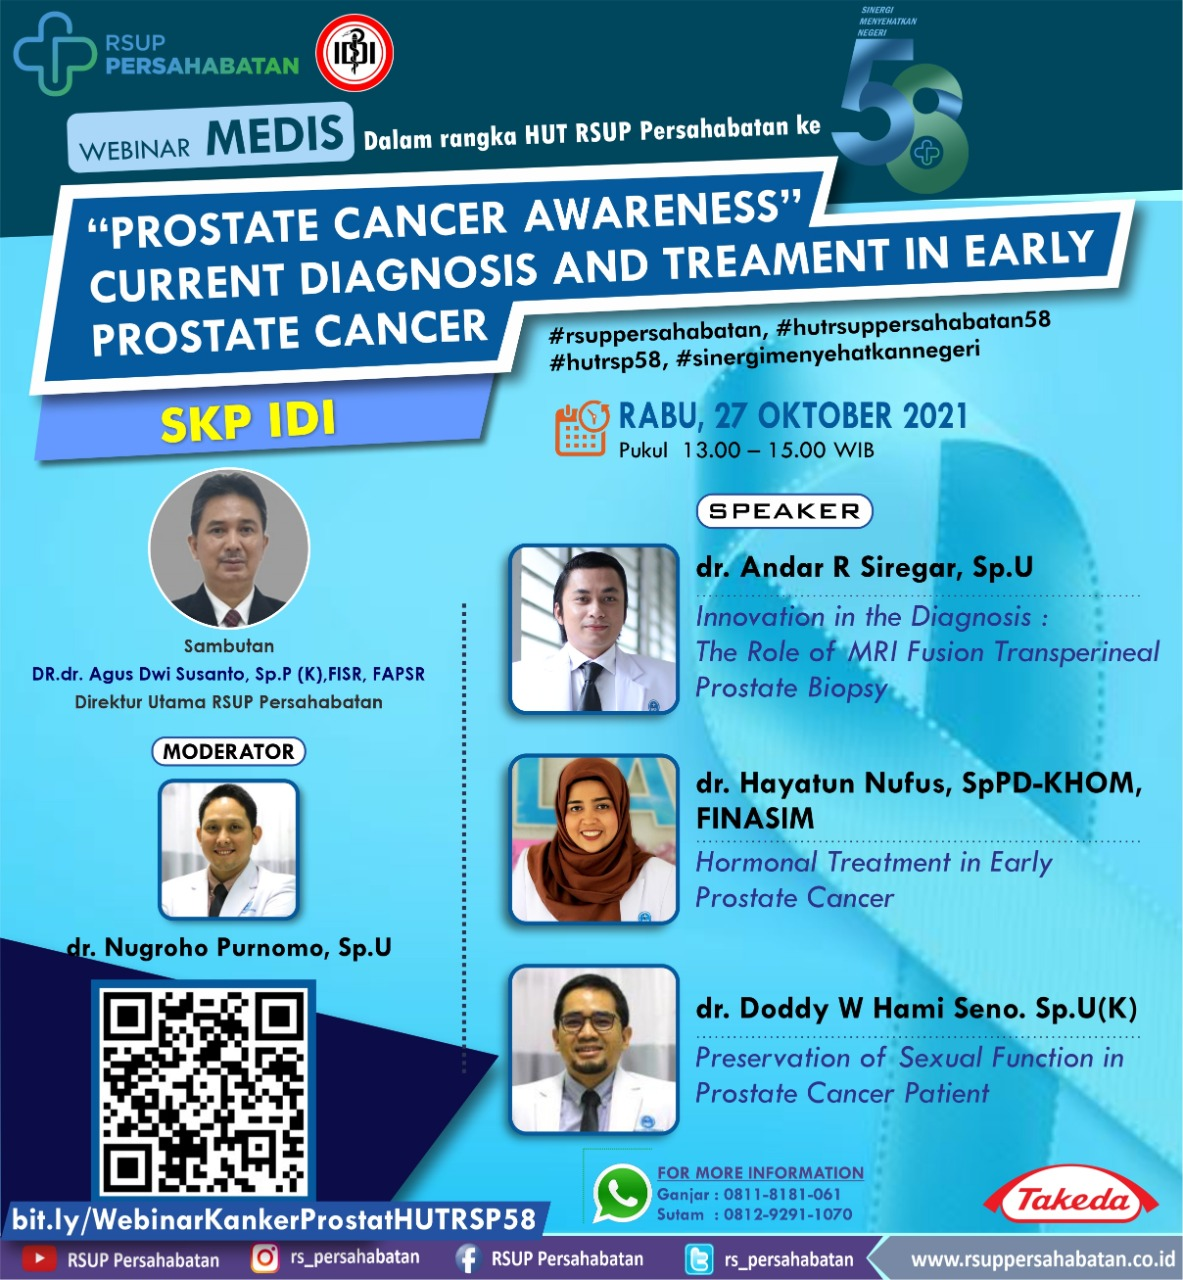 CURRENT DIAGNOSIS AND TREAMENT IN EARLY PROSTATE CANCER